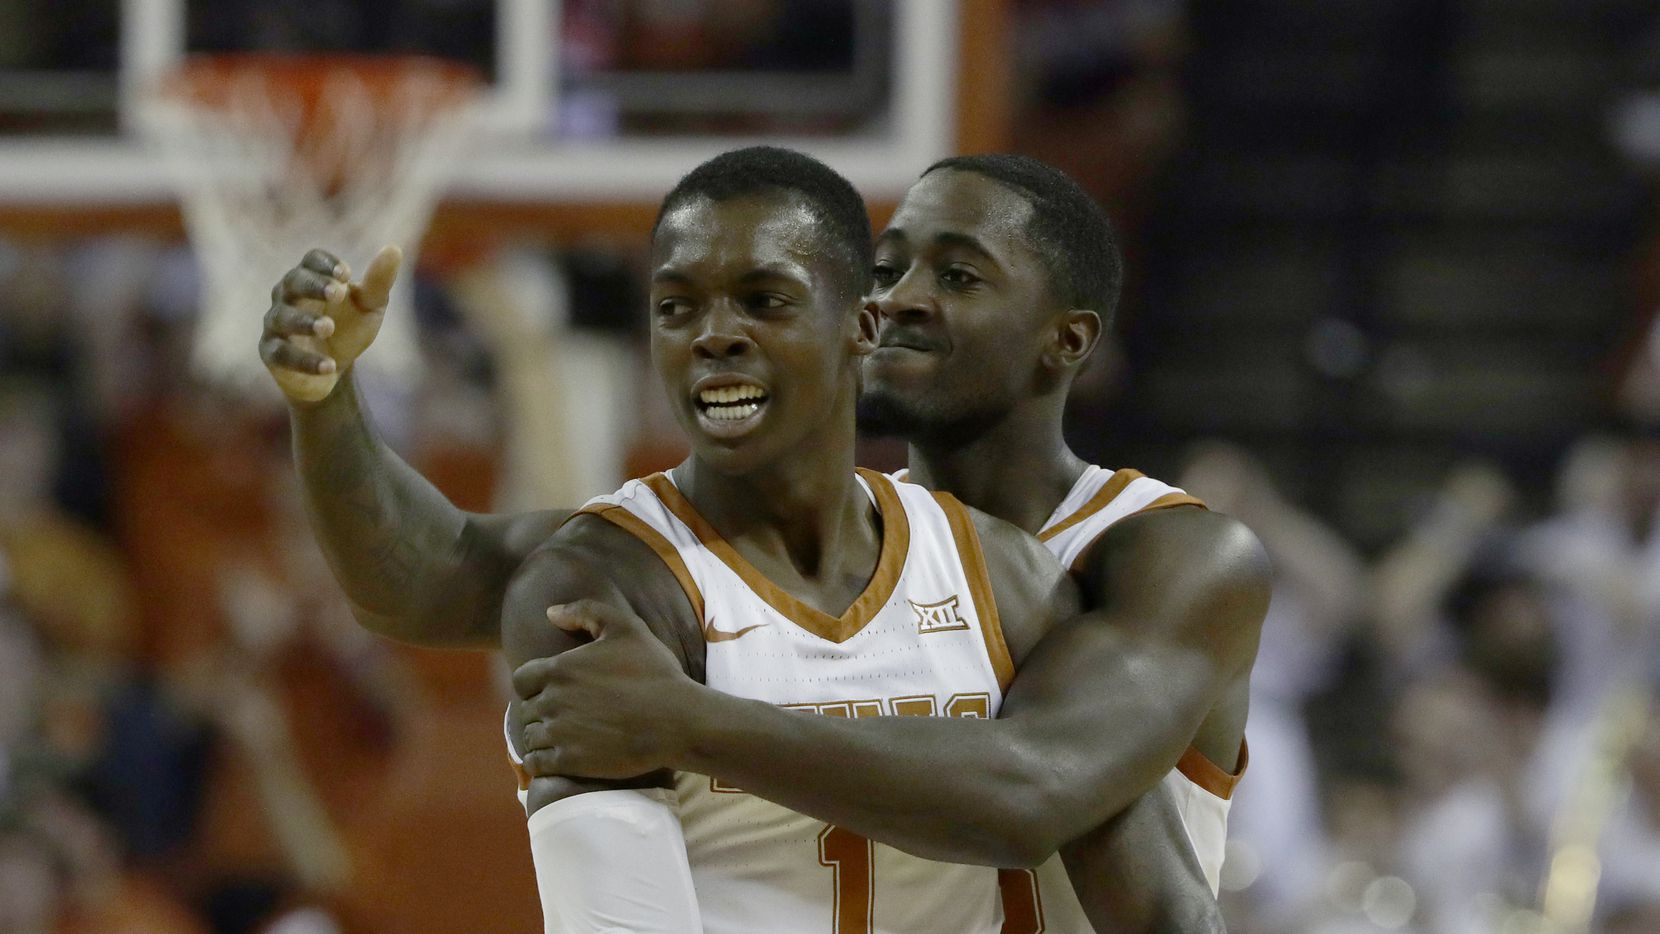 Texas guard Andrew Jones (1) and guard Courtney Ramey (3) celebrate a score against Kansas during the first half of an NCAA college basketball game, Saturday, Jan. 18, 2020, in Austin, Texas.